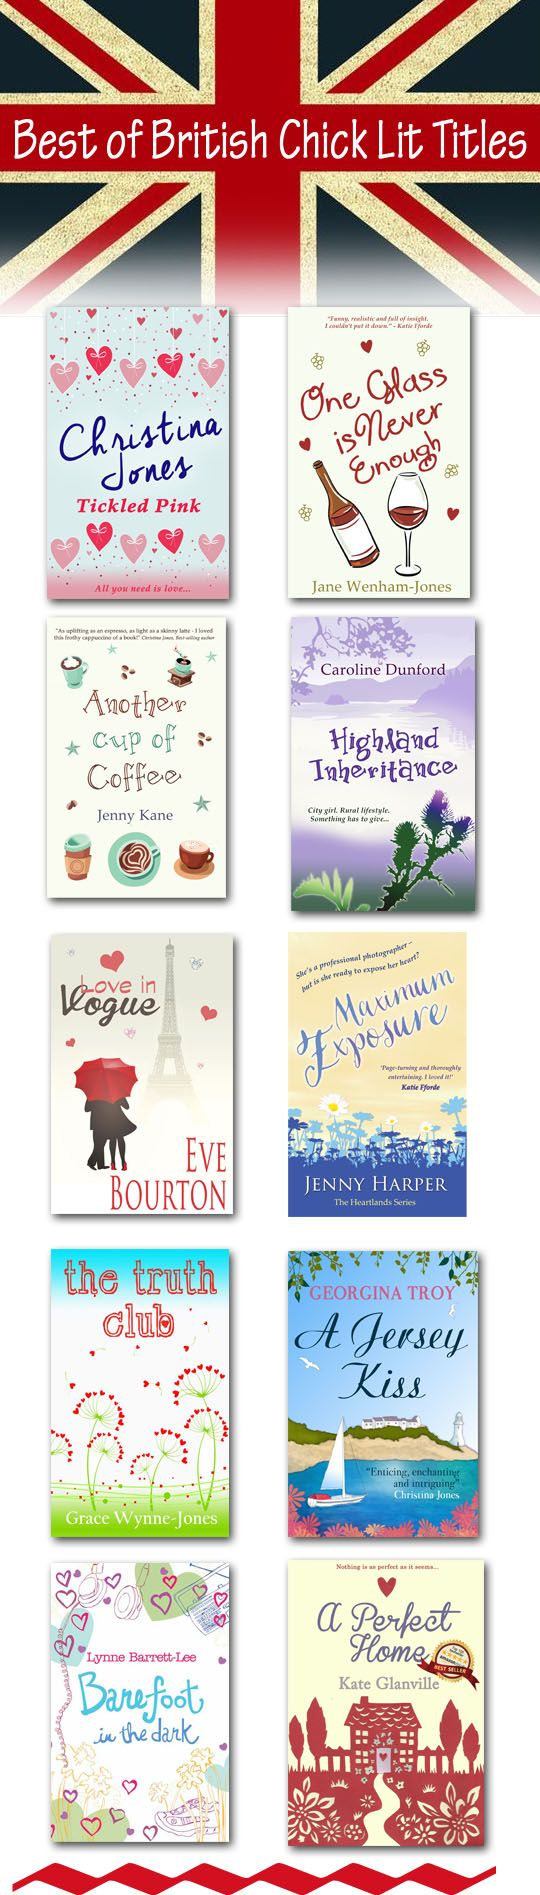 Love Reading Chick Lit Books? Then You'll Love These Titles By Great British